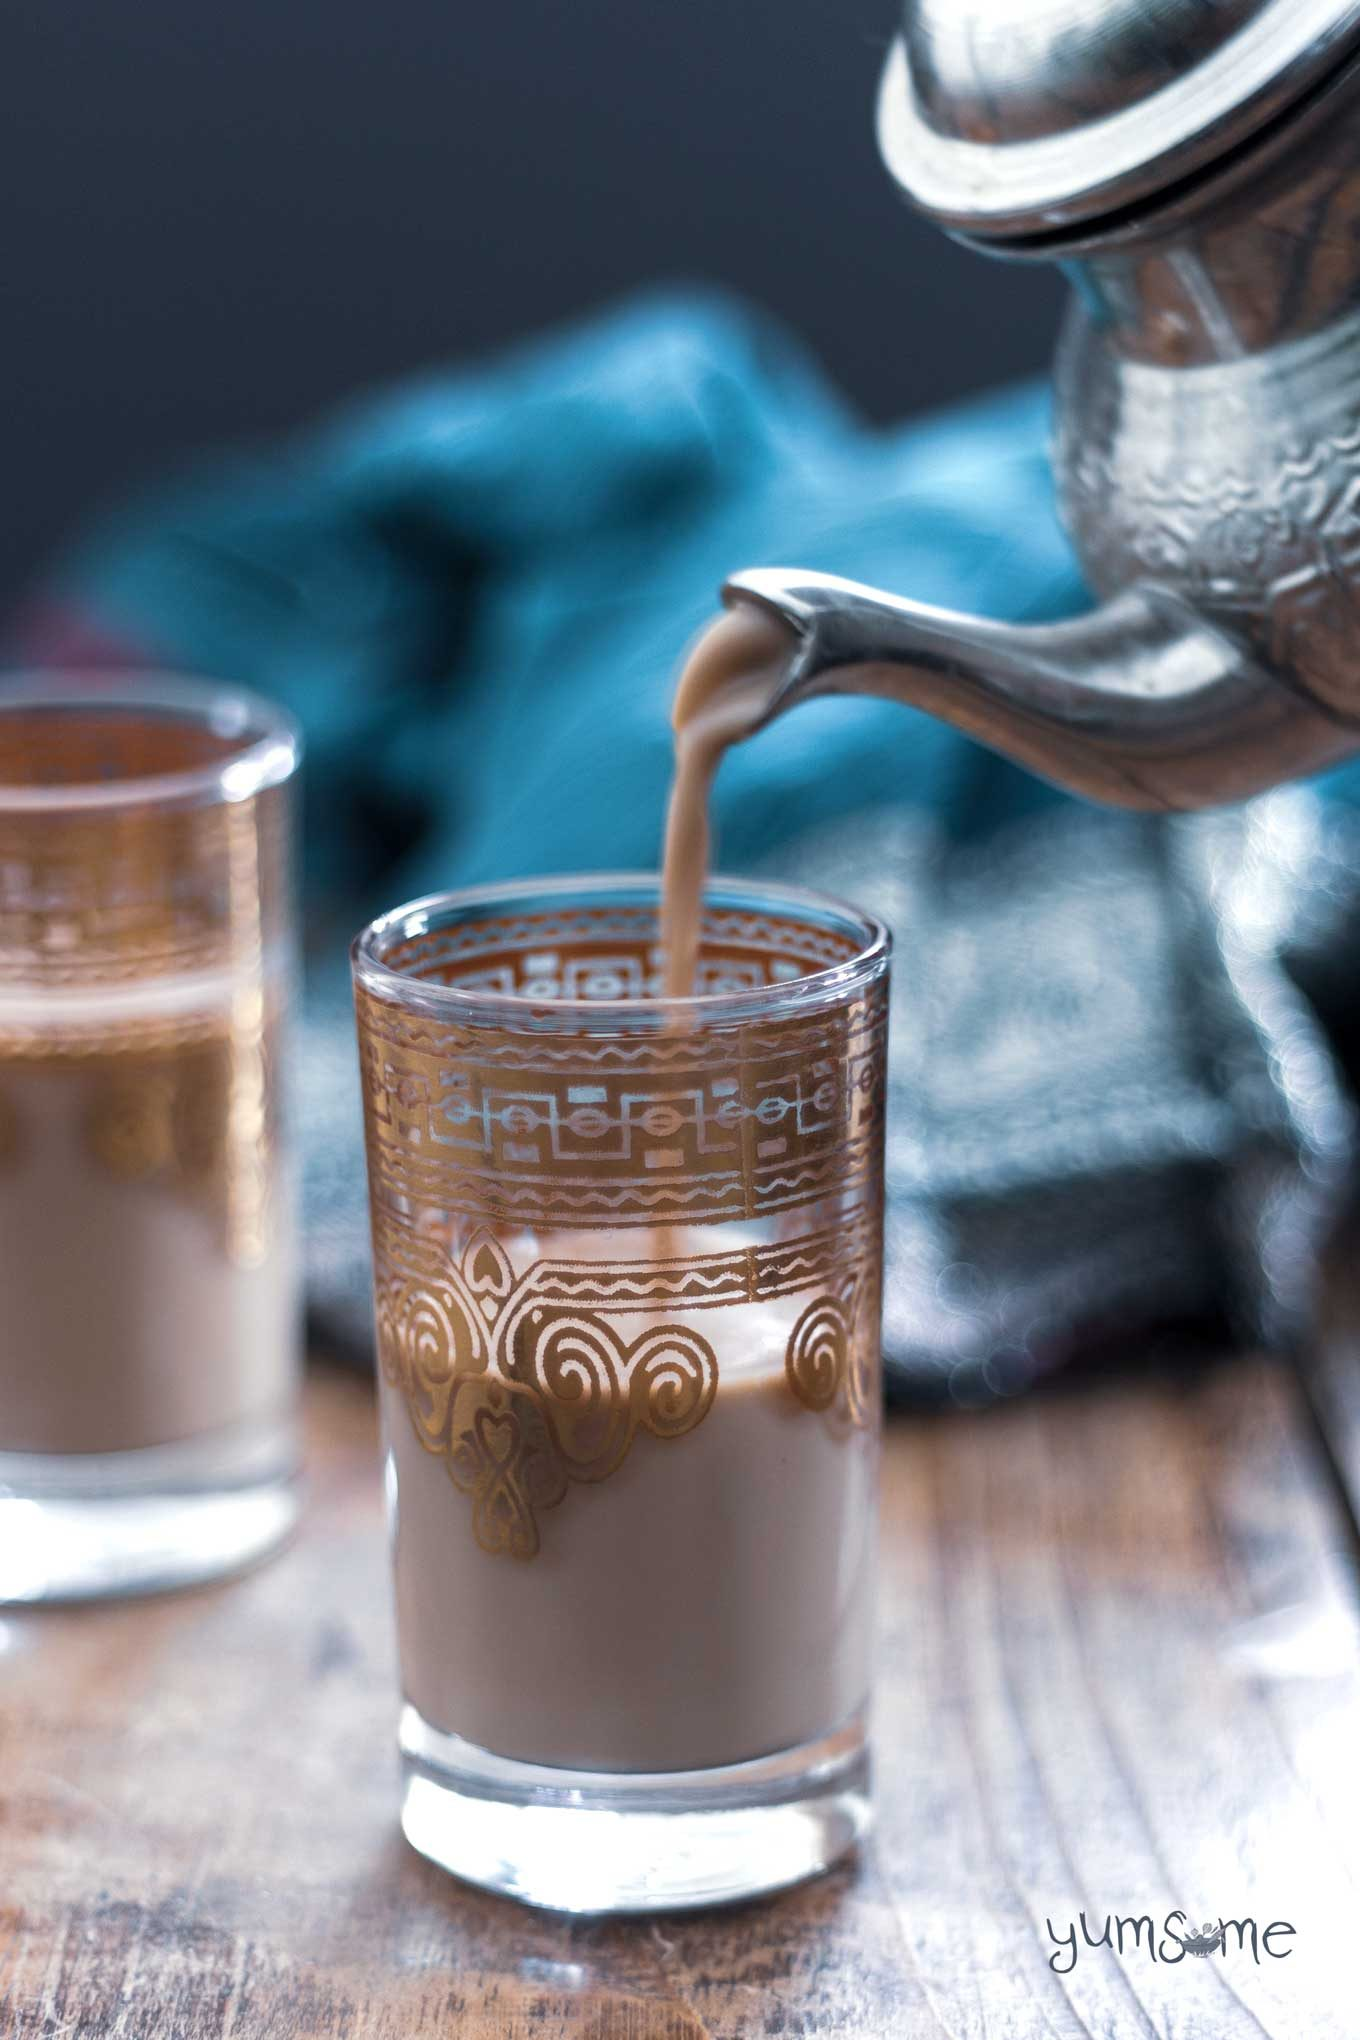 Masala chai being poured into a decorated tea glass from a silver tea pot.